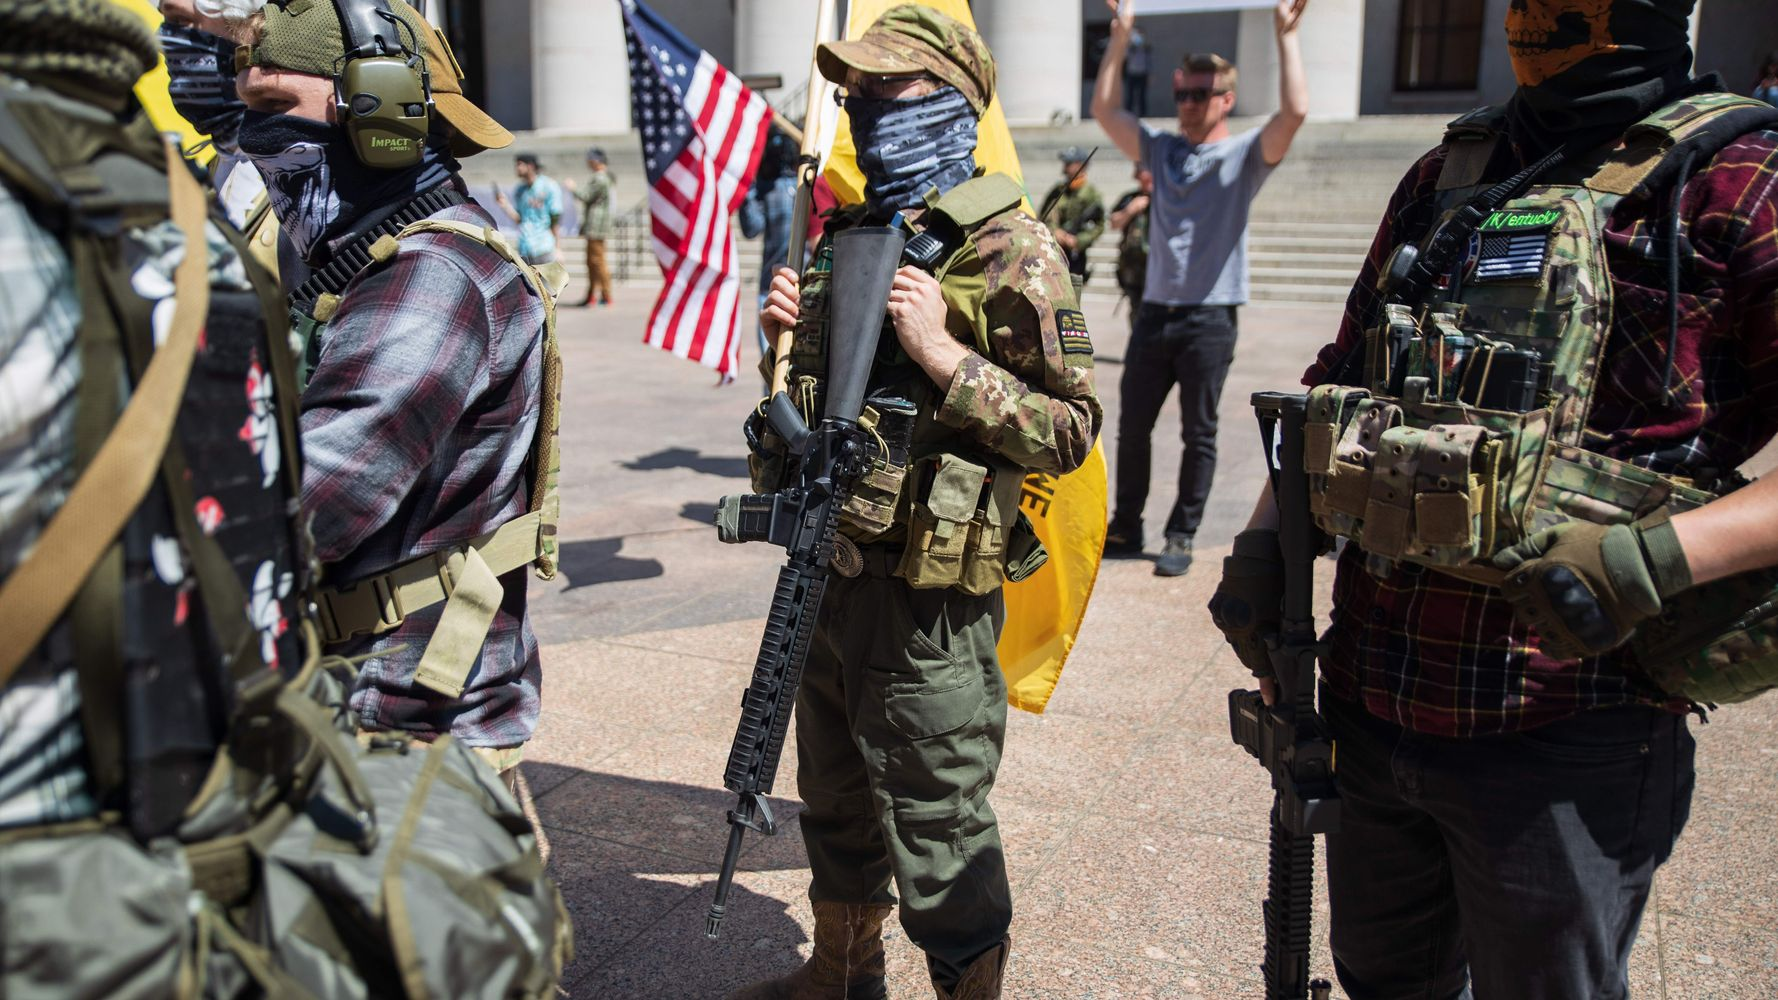 Verslag: Right-Wing Militia Groups 'Pose A Serious Threat' To Voters